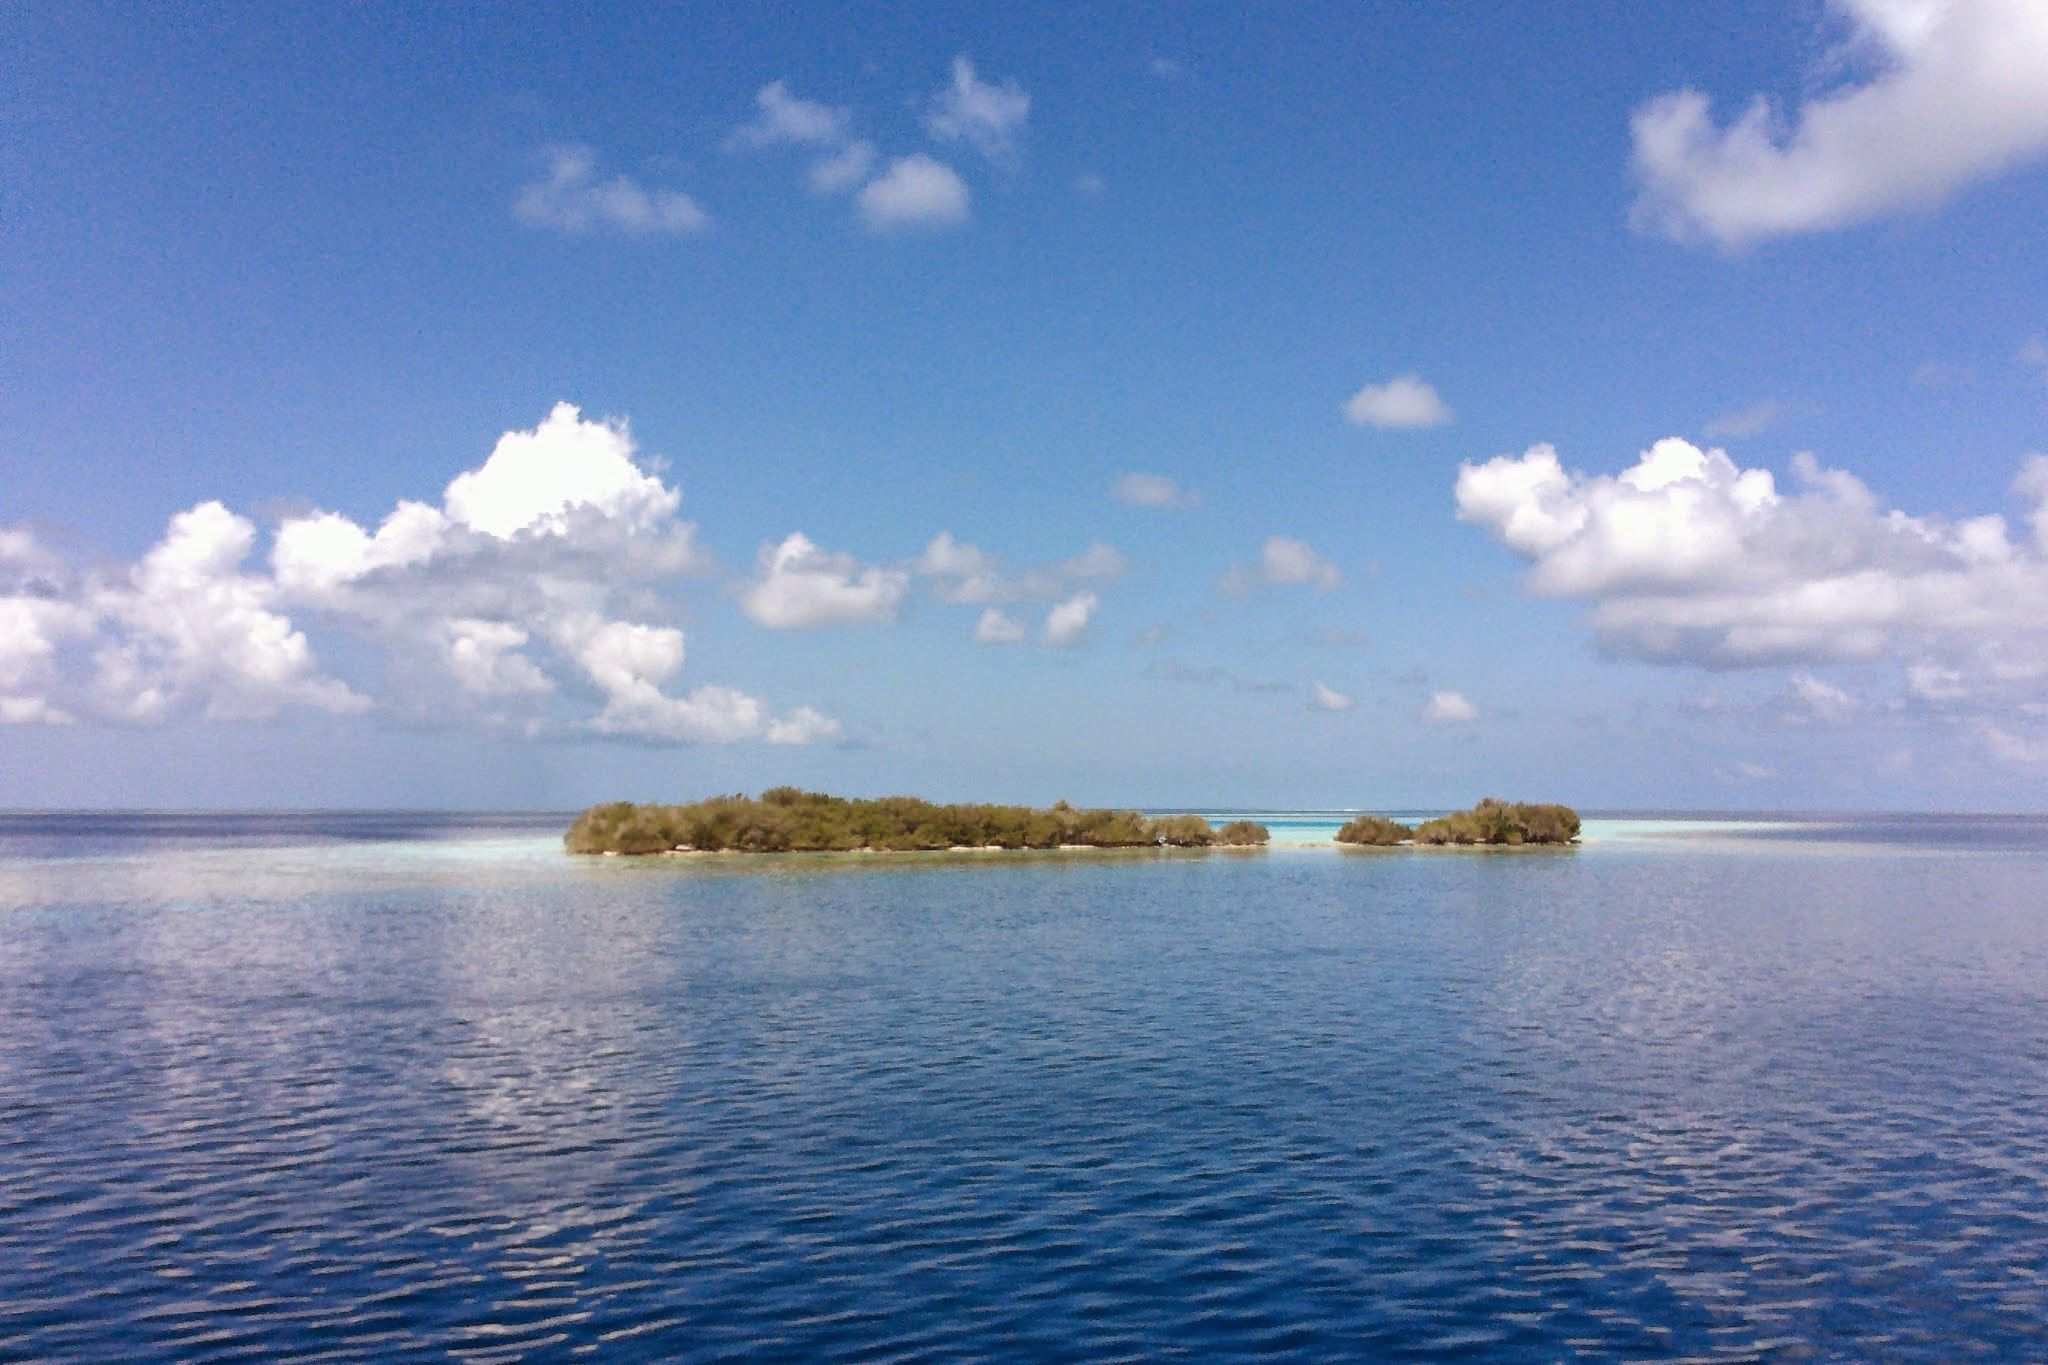 The Maldives - We surveyed countless of reefs on atolls all throughout the Maldivian archipelago over a 21 day cruise. One of the flattest places in the world - both on and off the water.